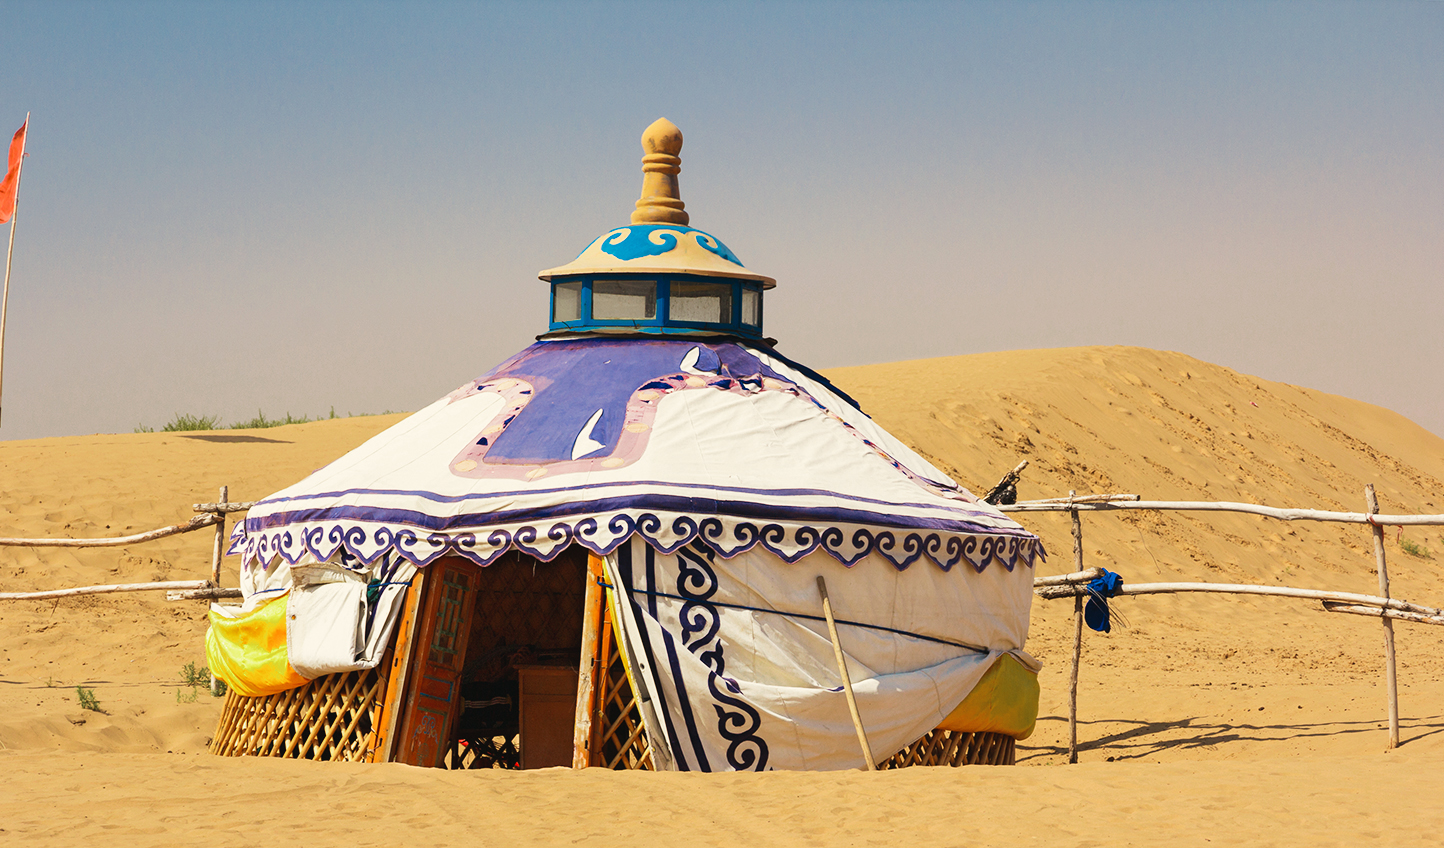 Depart from your yurt and head to the sand dunes for a sunset you won't want to miss